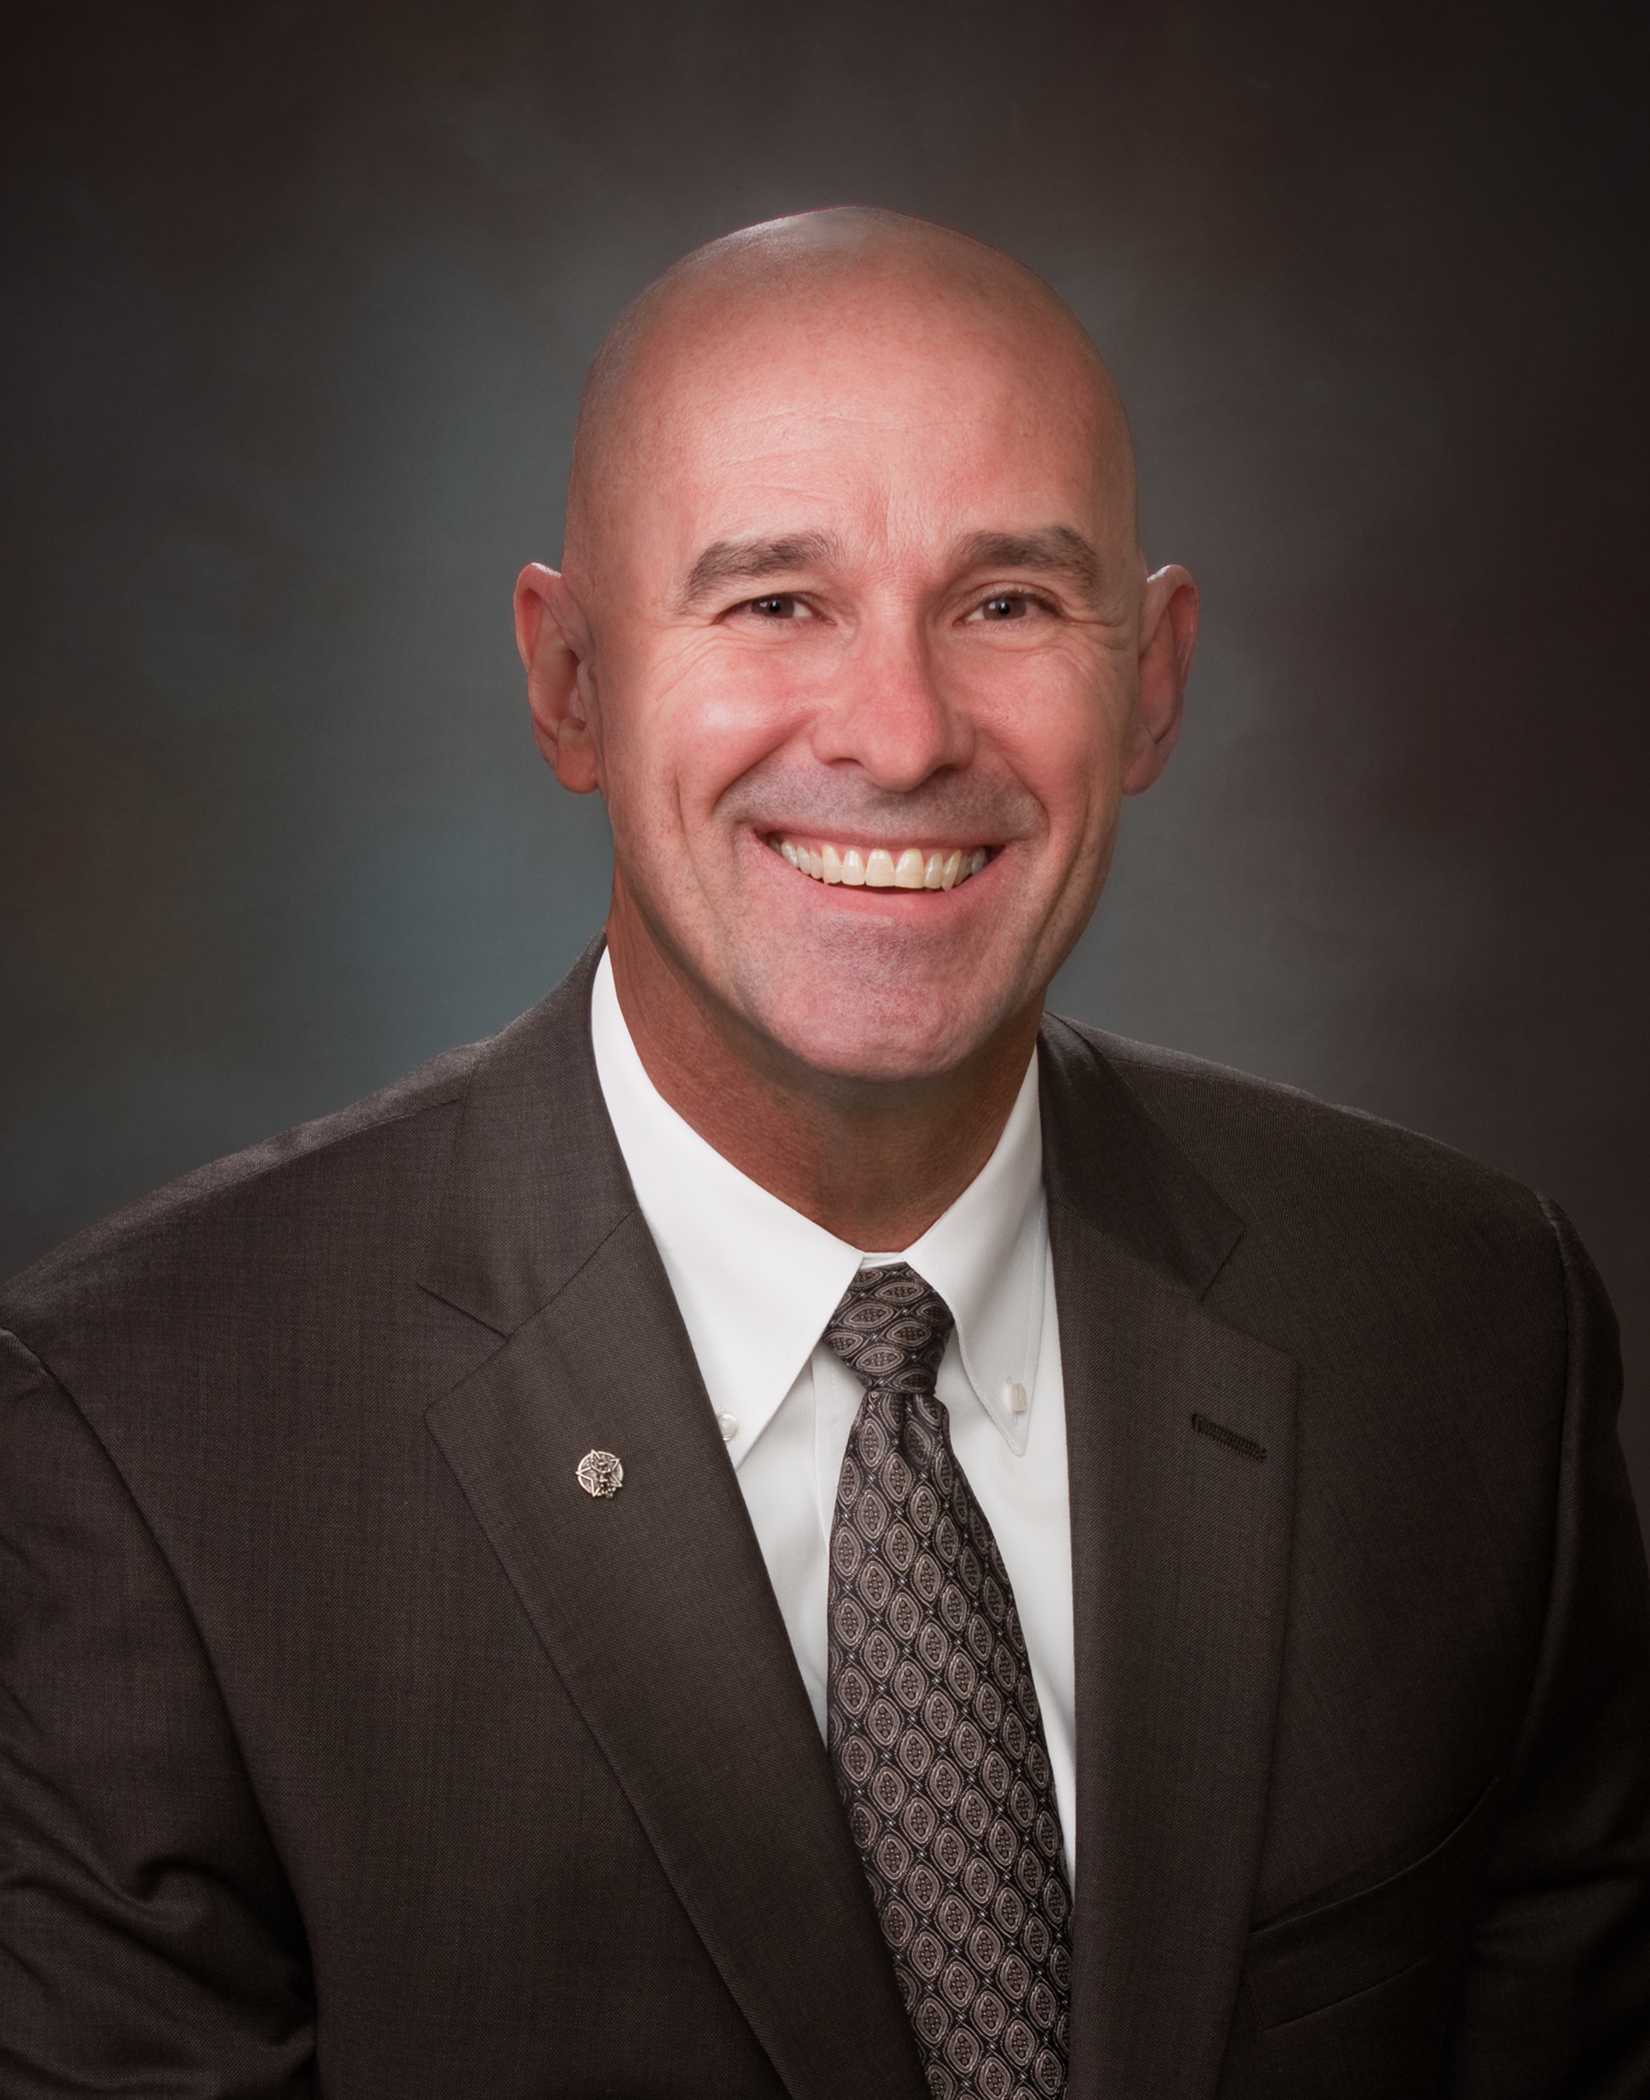 Waldrip is the lone finalist for CISD's superintendent position. Photo courtesy of Meghan Youker of Frisco ISD